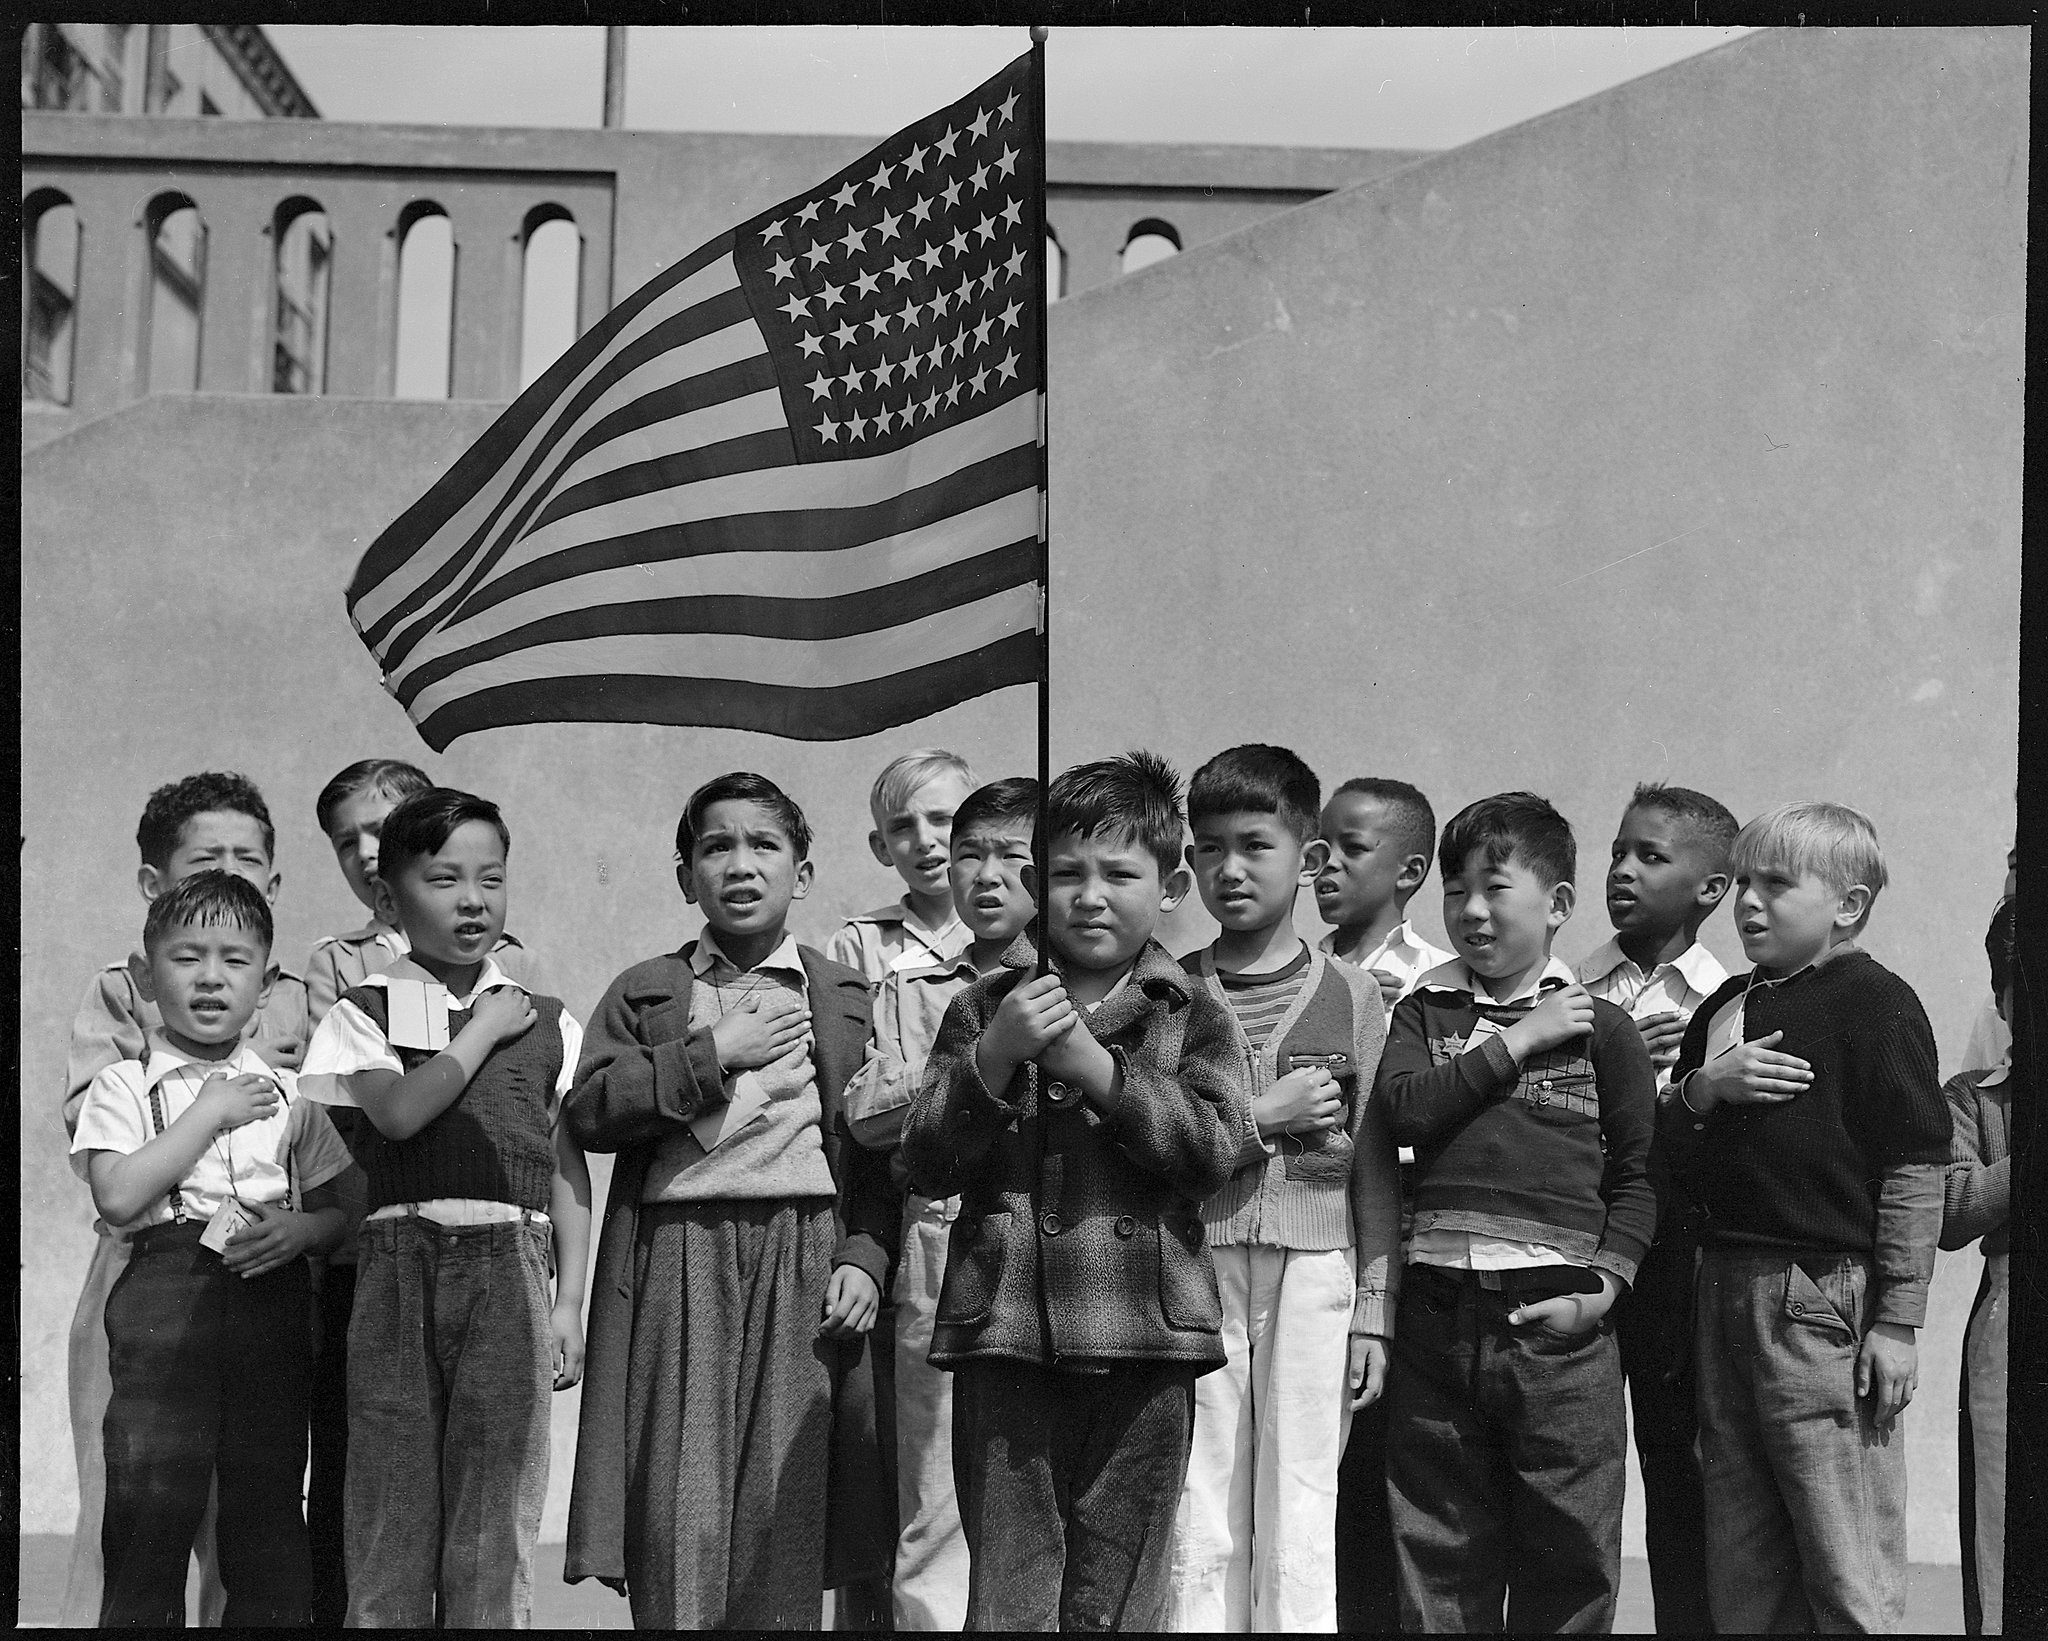 Children pledging allegiance to the American flag at San Francisco's Raphael Weill Elementary School in 1942.